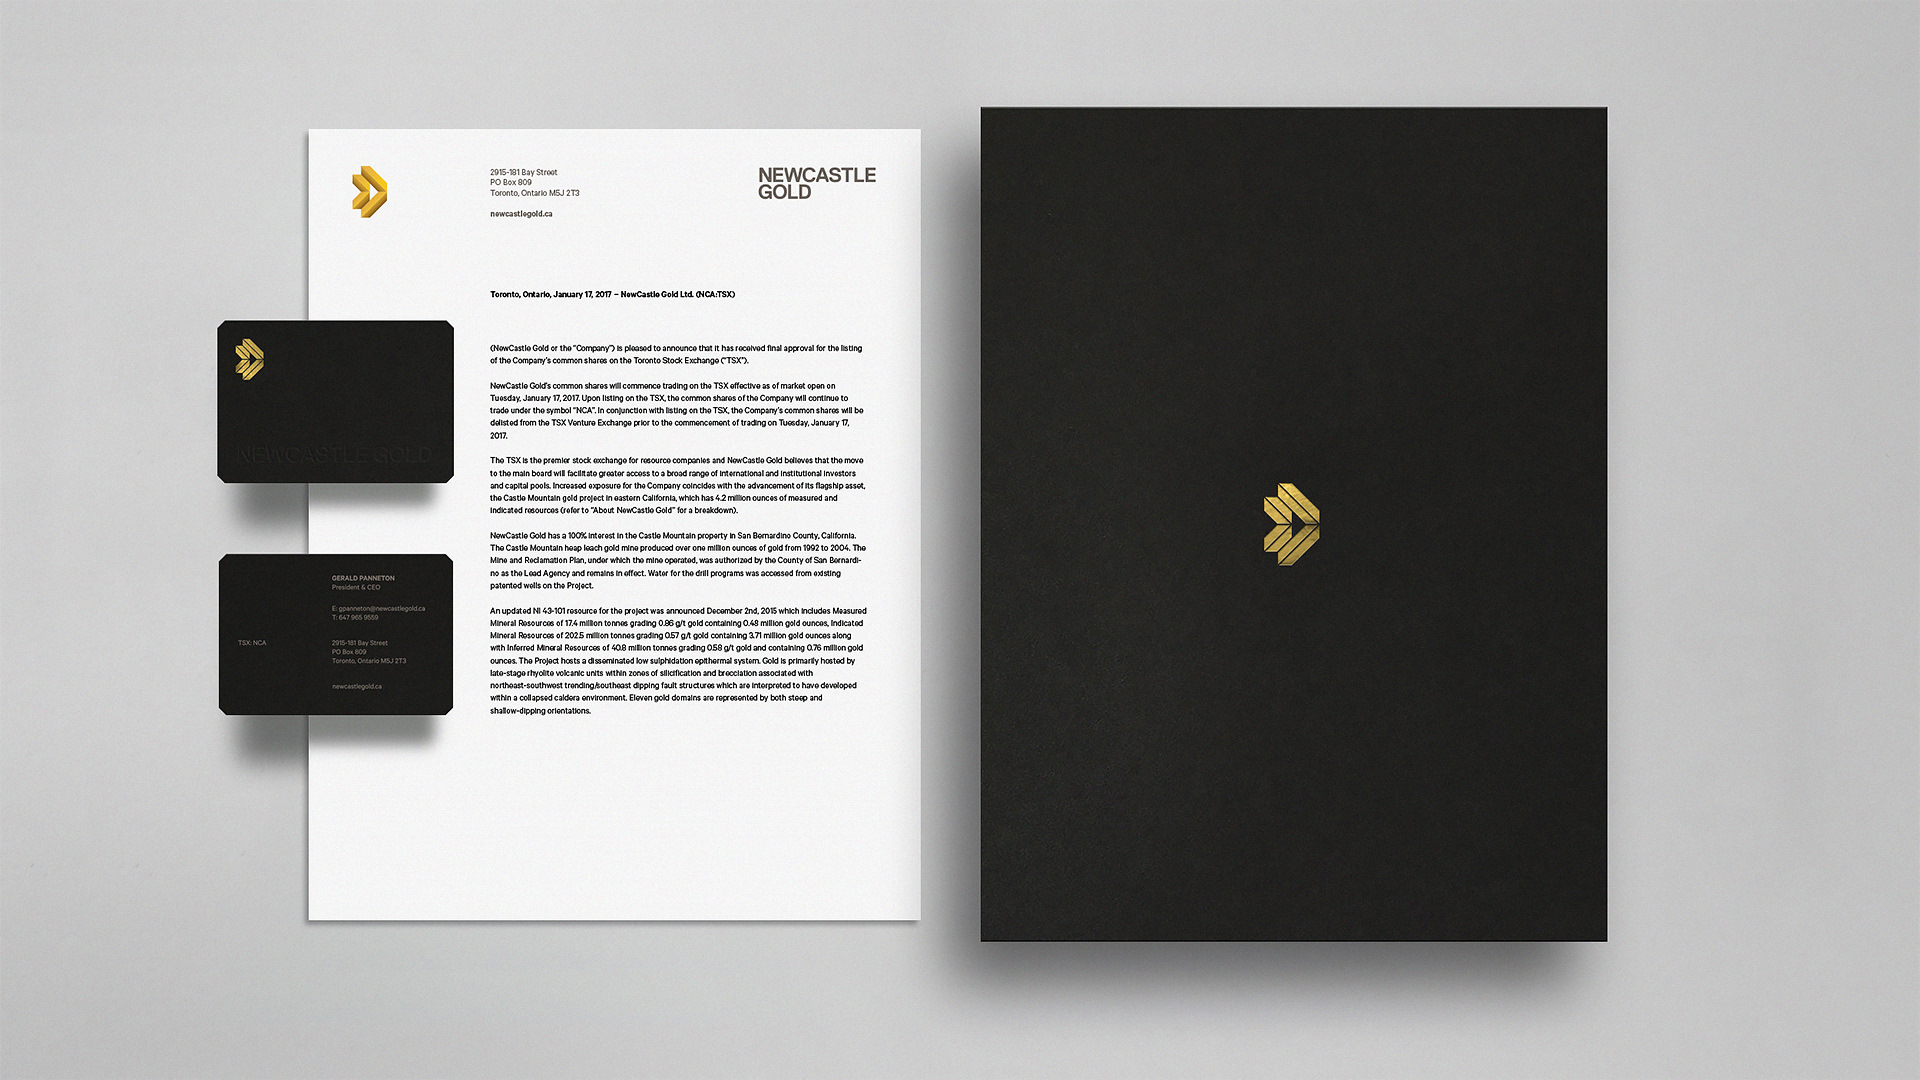 Newcastle gold brbauen brand design group surface mining layers was the main reference to develop ncas advertising and document identification system which derives from proportional division of the biocorpaavc Images